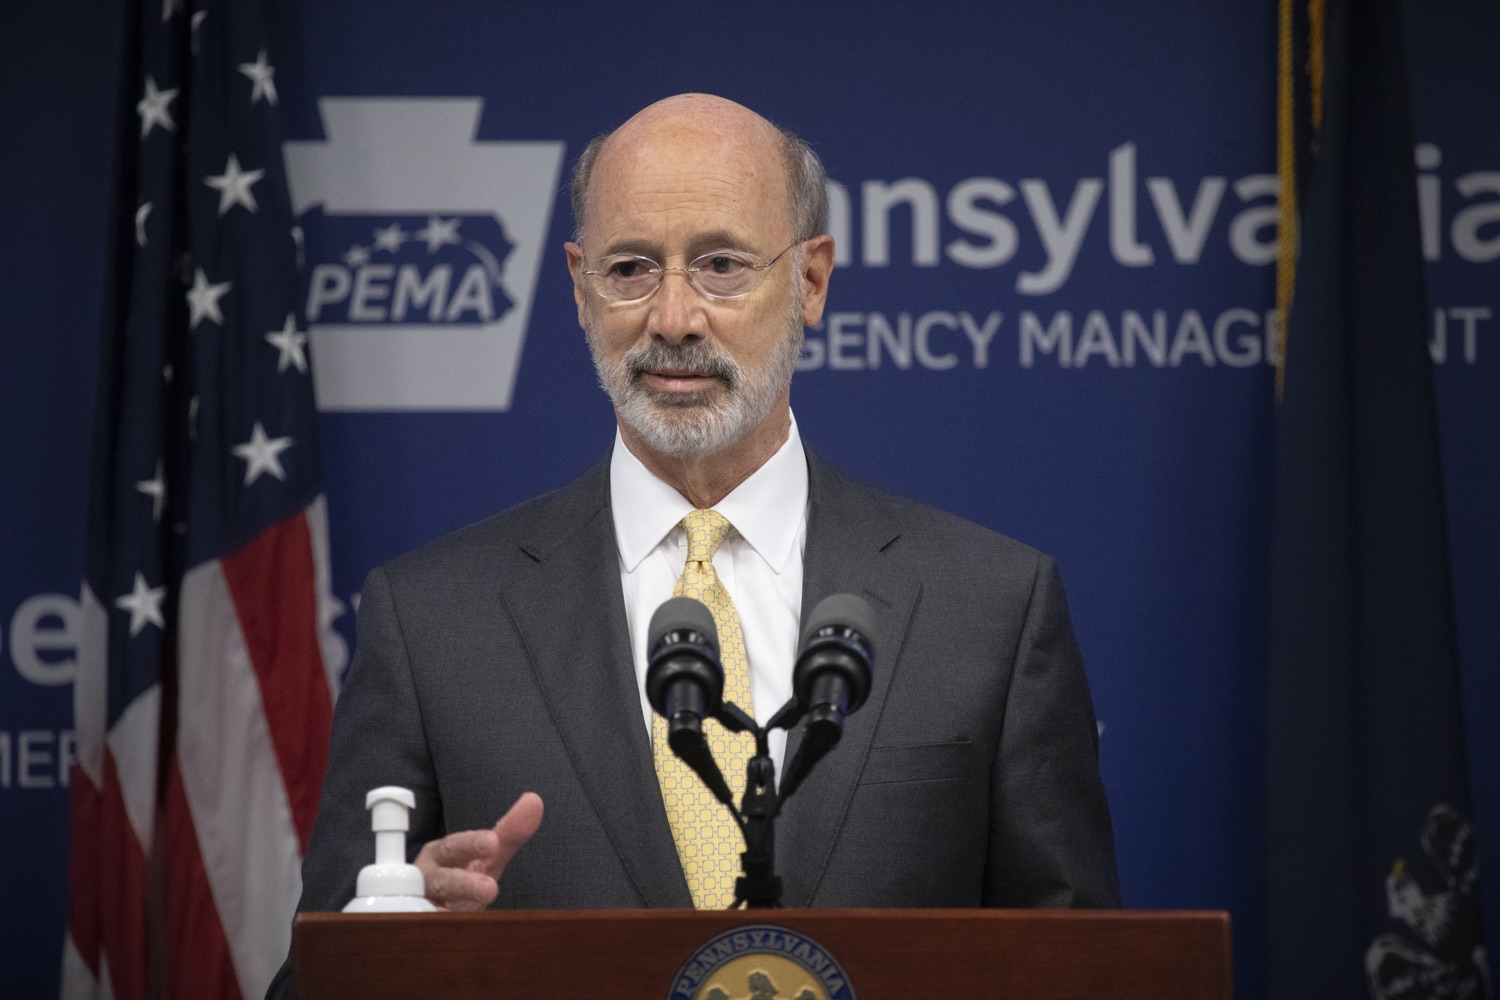 """<a href=""""https://filesource.wostreaming.net/commonwealthofpa/photo/18201_gov_orasure_dz_014.jpg"""" target=""""_blank"""">⇣Download Photo<br></a>Pennsylvania Governor Tom Wolf speaking to the press.  Today, Governor Tom Wolf announced that OraSure Technologies Inc., a developer and manufacturer of rapid diagnostic tests, collection and stabilization devices headquartered in Northampton County, will expand its manufacturing operations in the Lehigh Valley, creating 177 new, full-time jobs and retaining 233 jobs.  Harrisburg, PA  August 11, 2020"""